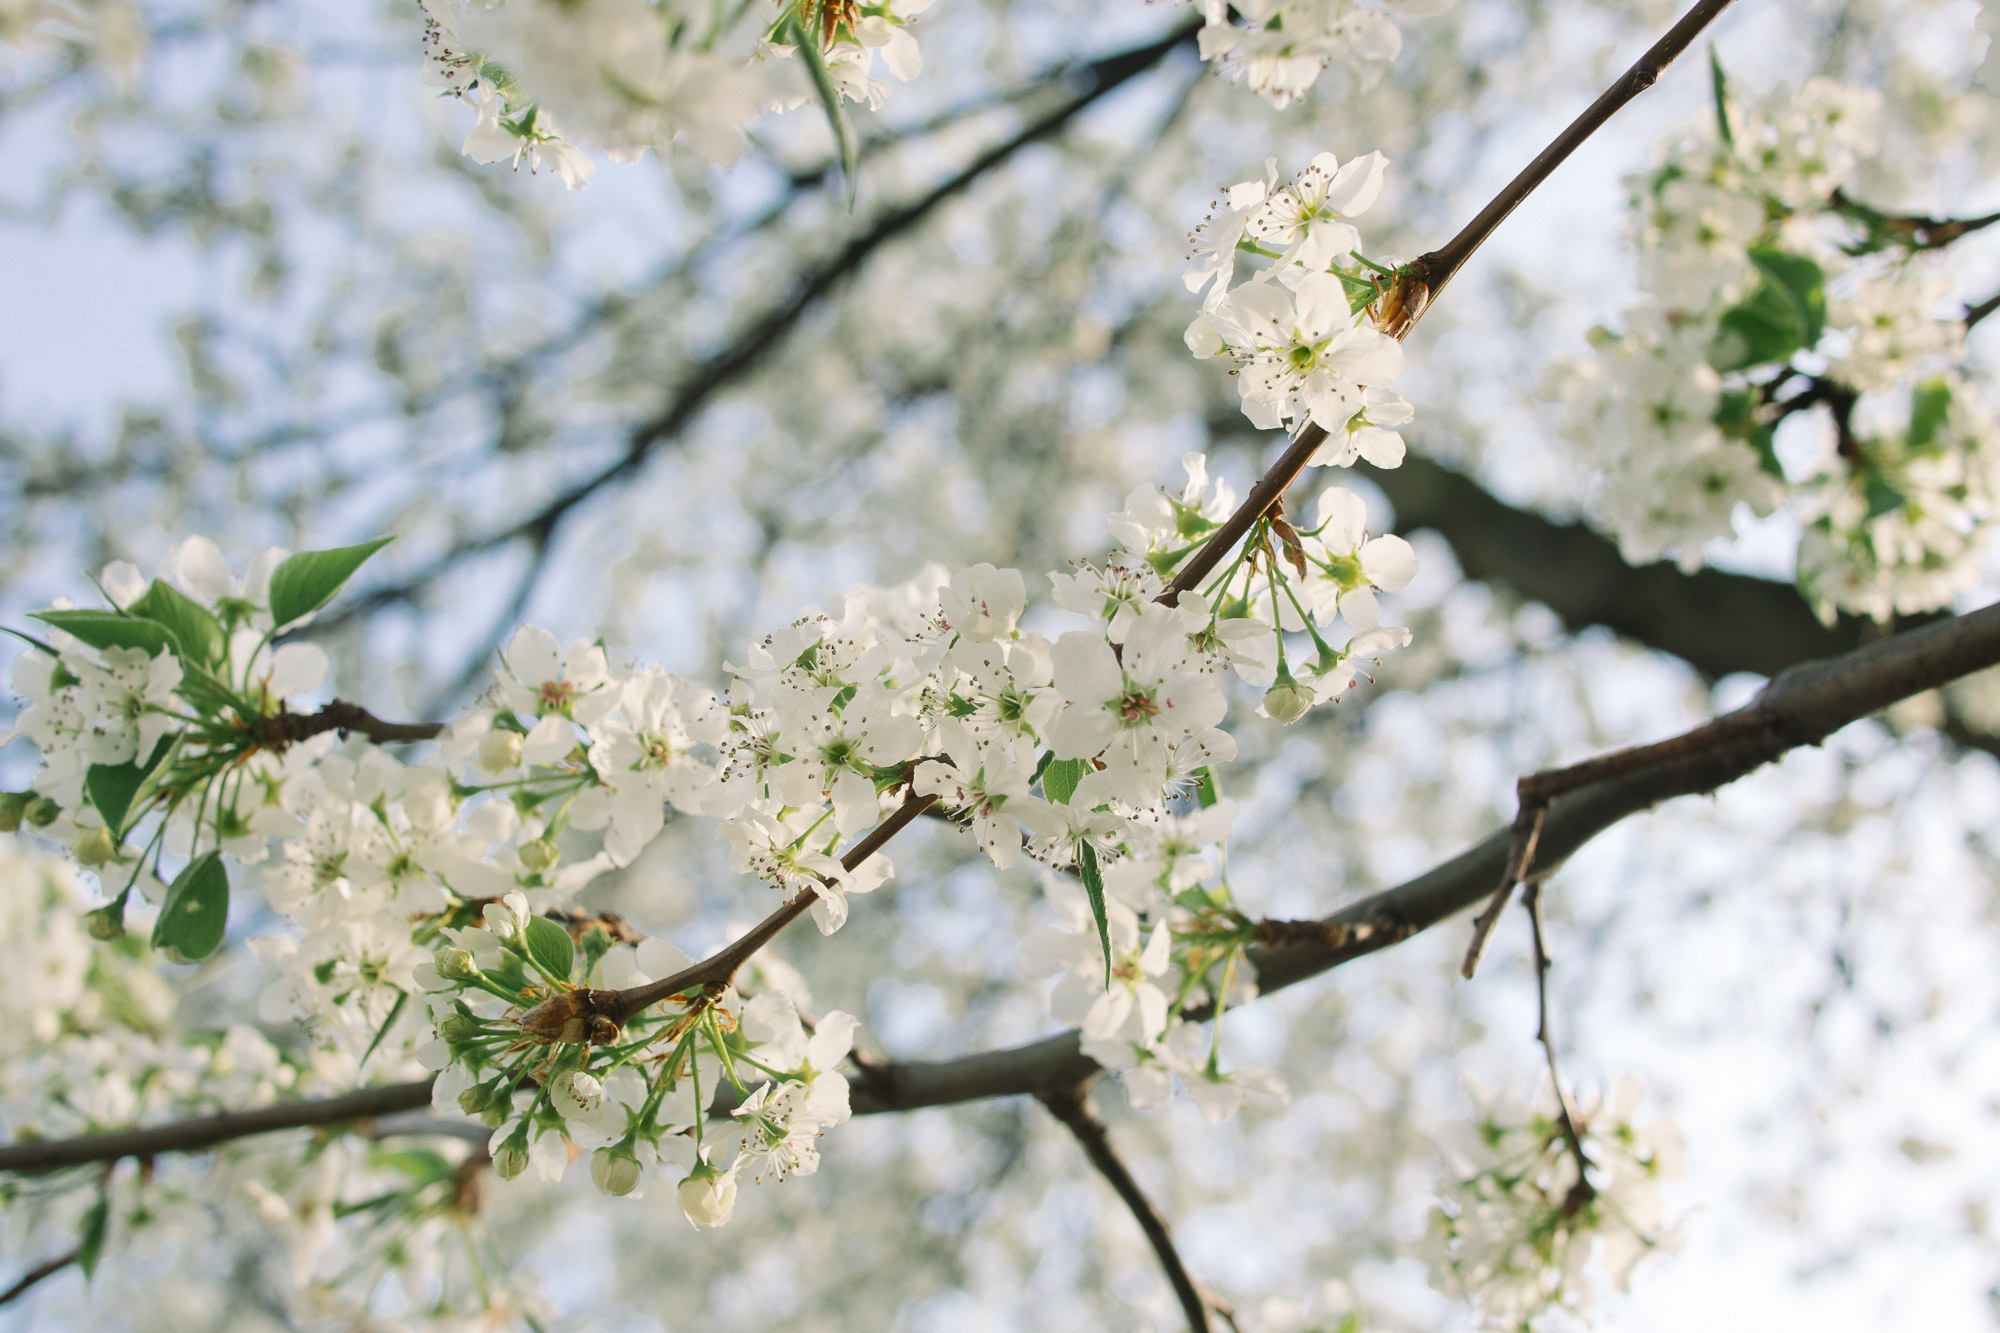 Blooming white flowers on a tree in spring